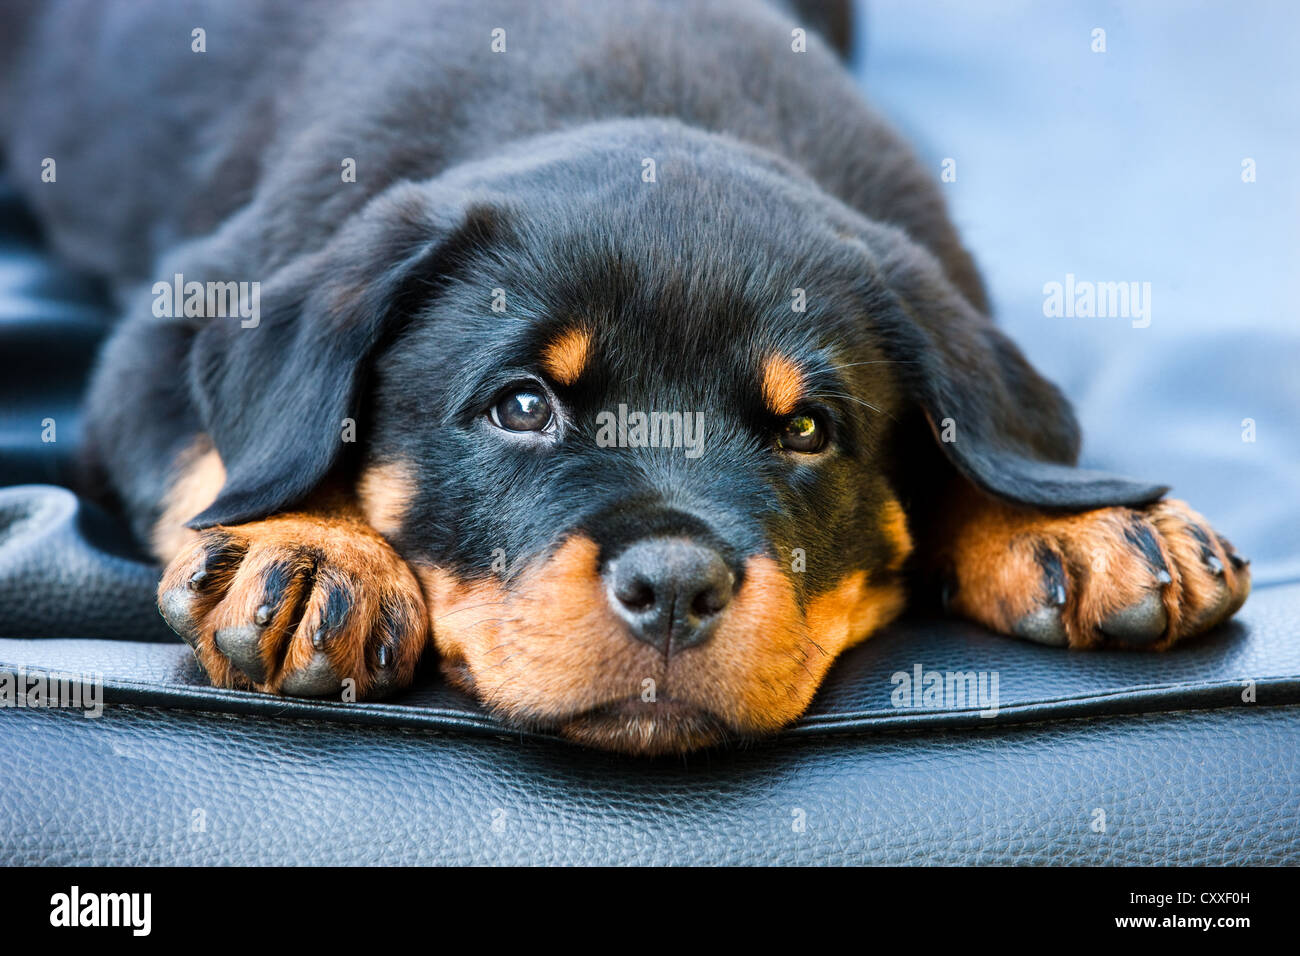 Rottweiler Puppy Dog Lying In A Dog Bed North Tyrol Austria